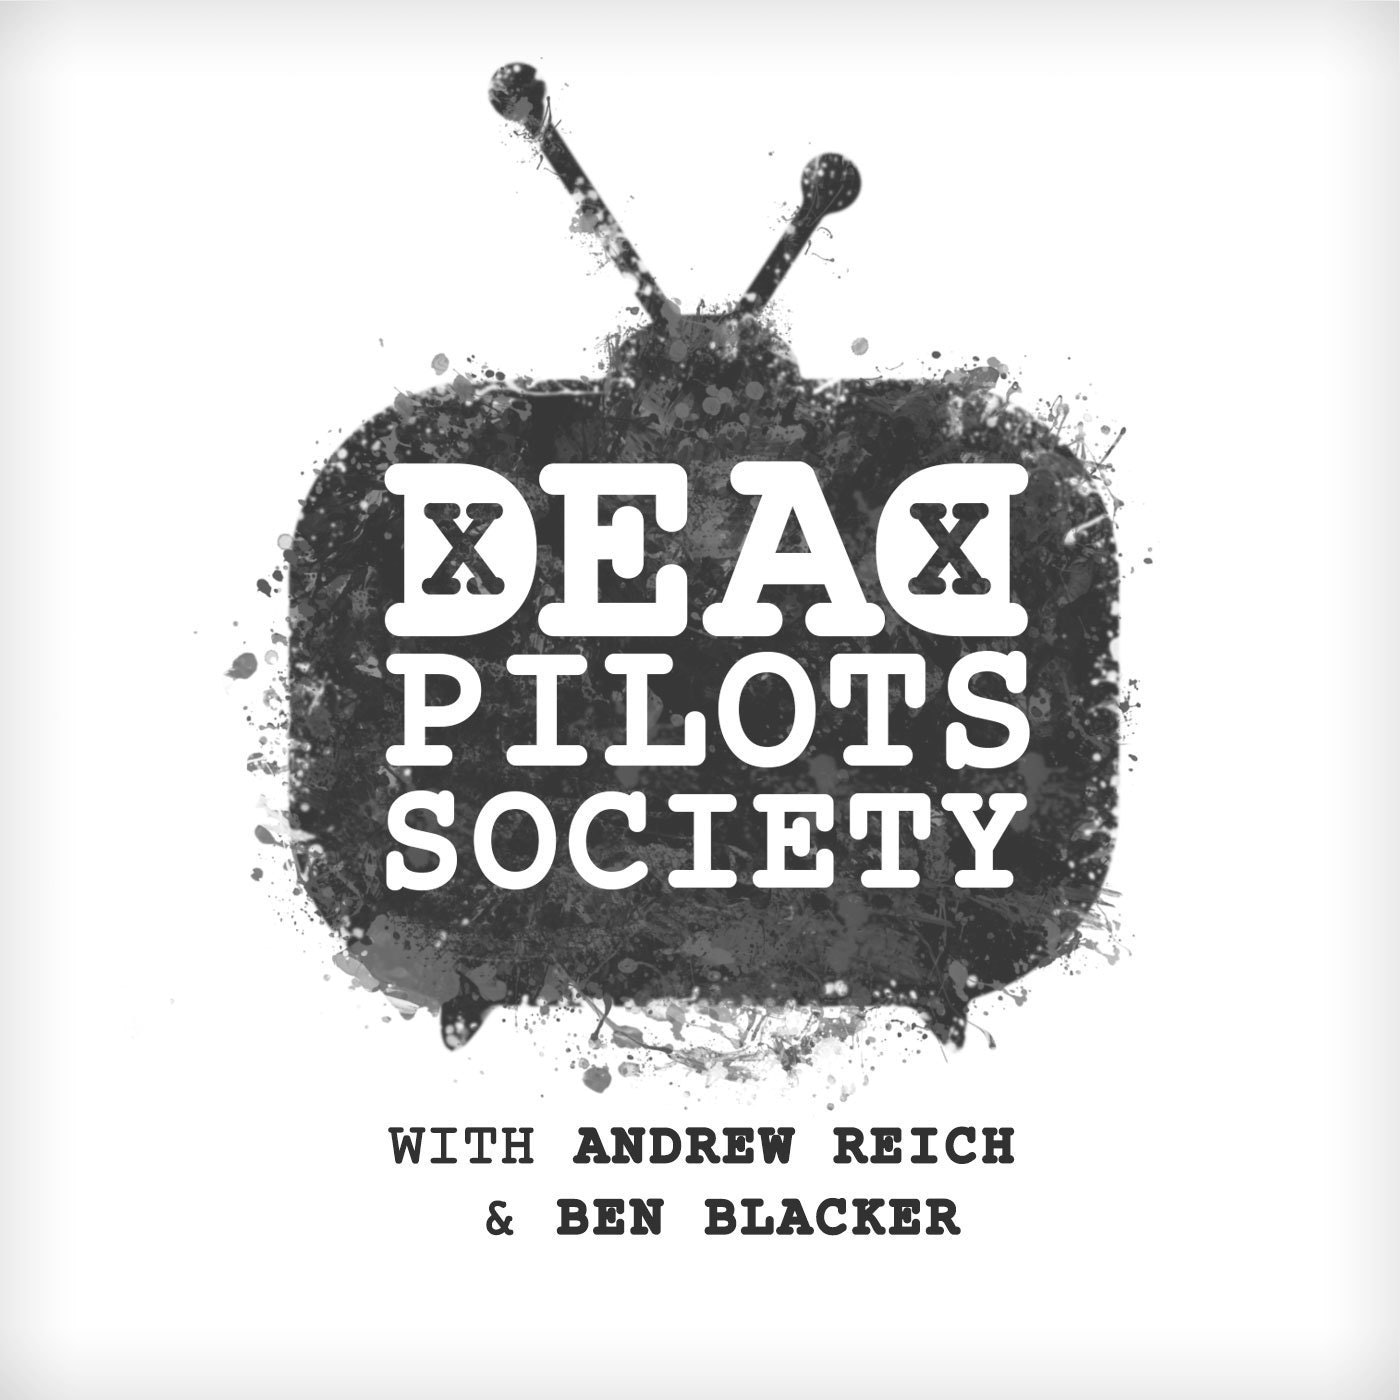 Dead Pilots SocietyEpisode 7 – Big(March 19th, 2017) - IT'S OUR PLEDGE DRIVE EPISODE!! In this episode of Dead Pilots Society, Ben Blacker interviews Mike Royce (Everybody Loves Raymond, Men of a Certain Age, One Day at a Time) and Kevin Biegel (Cougar Town, Scrubs) regarding their dead pilot, Big, an adaptation of the 1988 motion picture starring Tom Hanks. You'll also listen to a never-before-heard live table read of Big performed by some of today's funniest comedic actors.